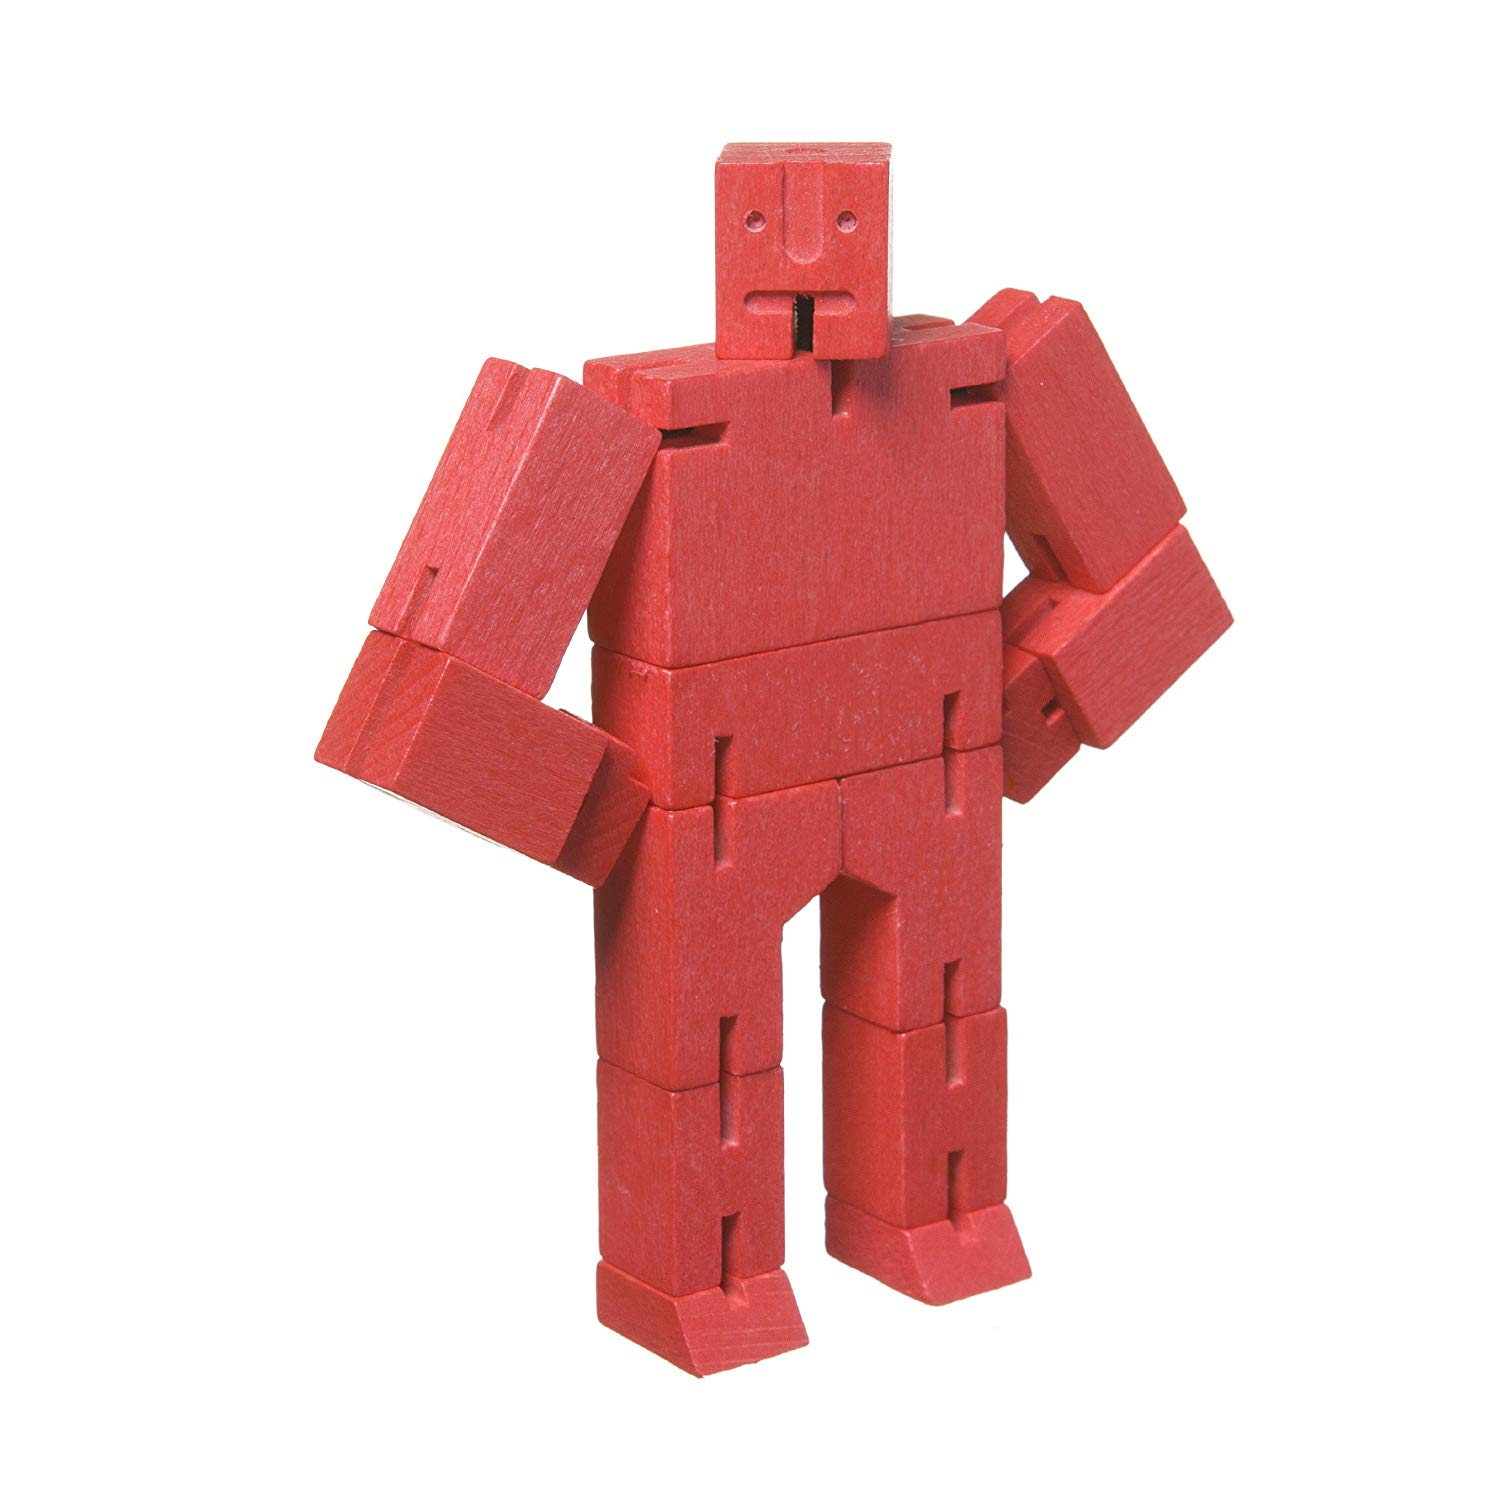 Areaware DWC4R Micro Cubebot Wooden Toy – Red